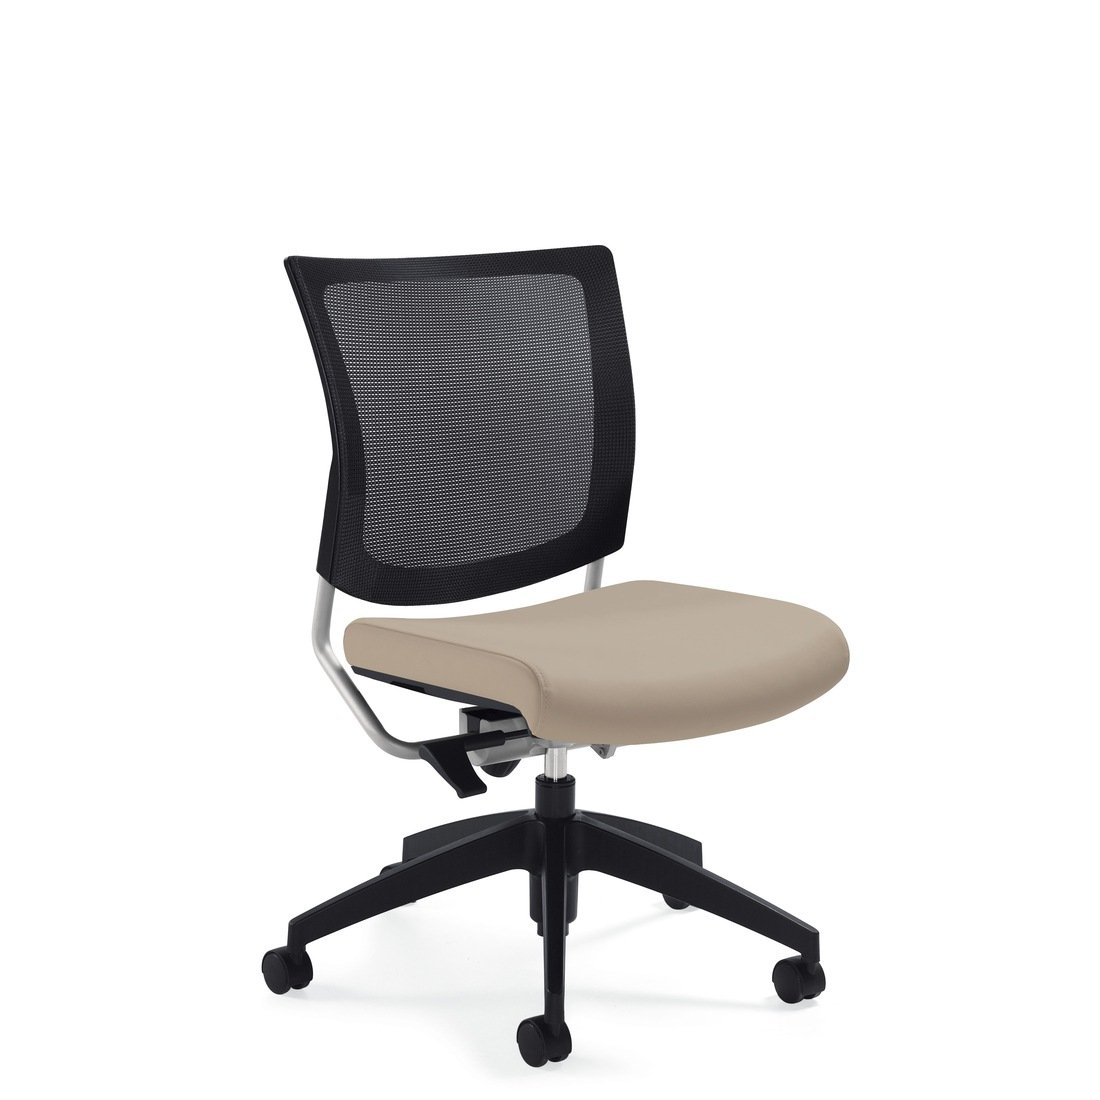 Graphic mesh posture back armless chair, model 2736MB. This chair has been placed on a white background.